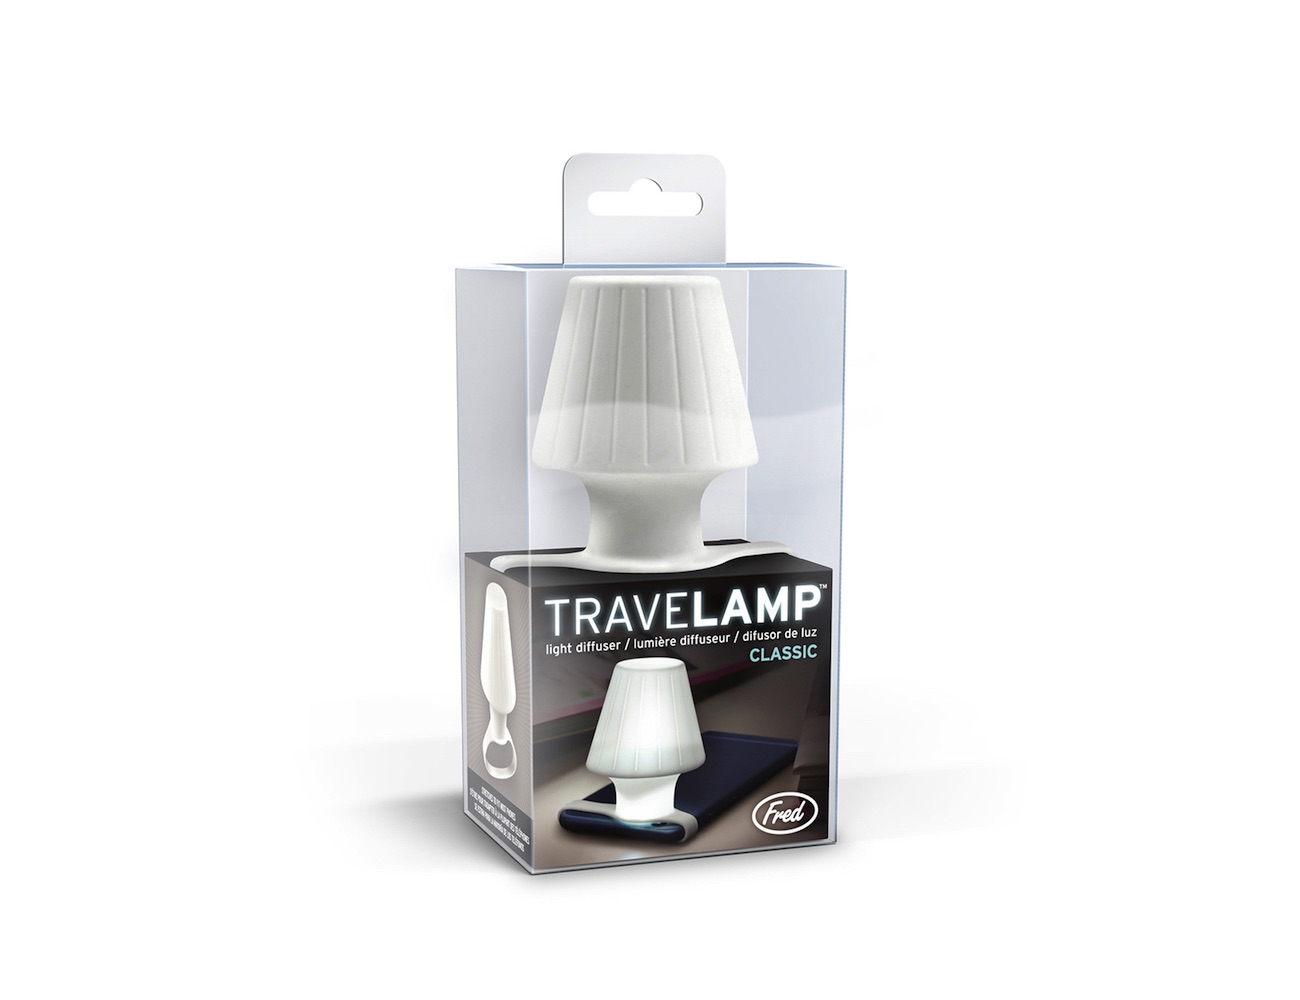 Travelamp Light Diffuser